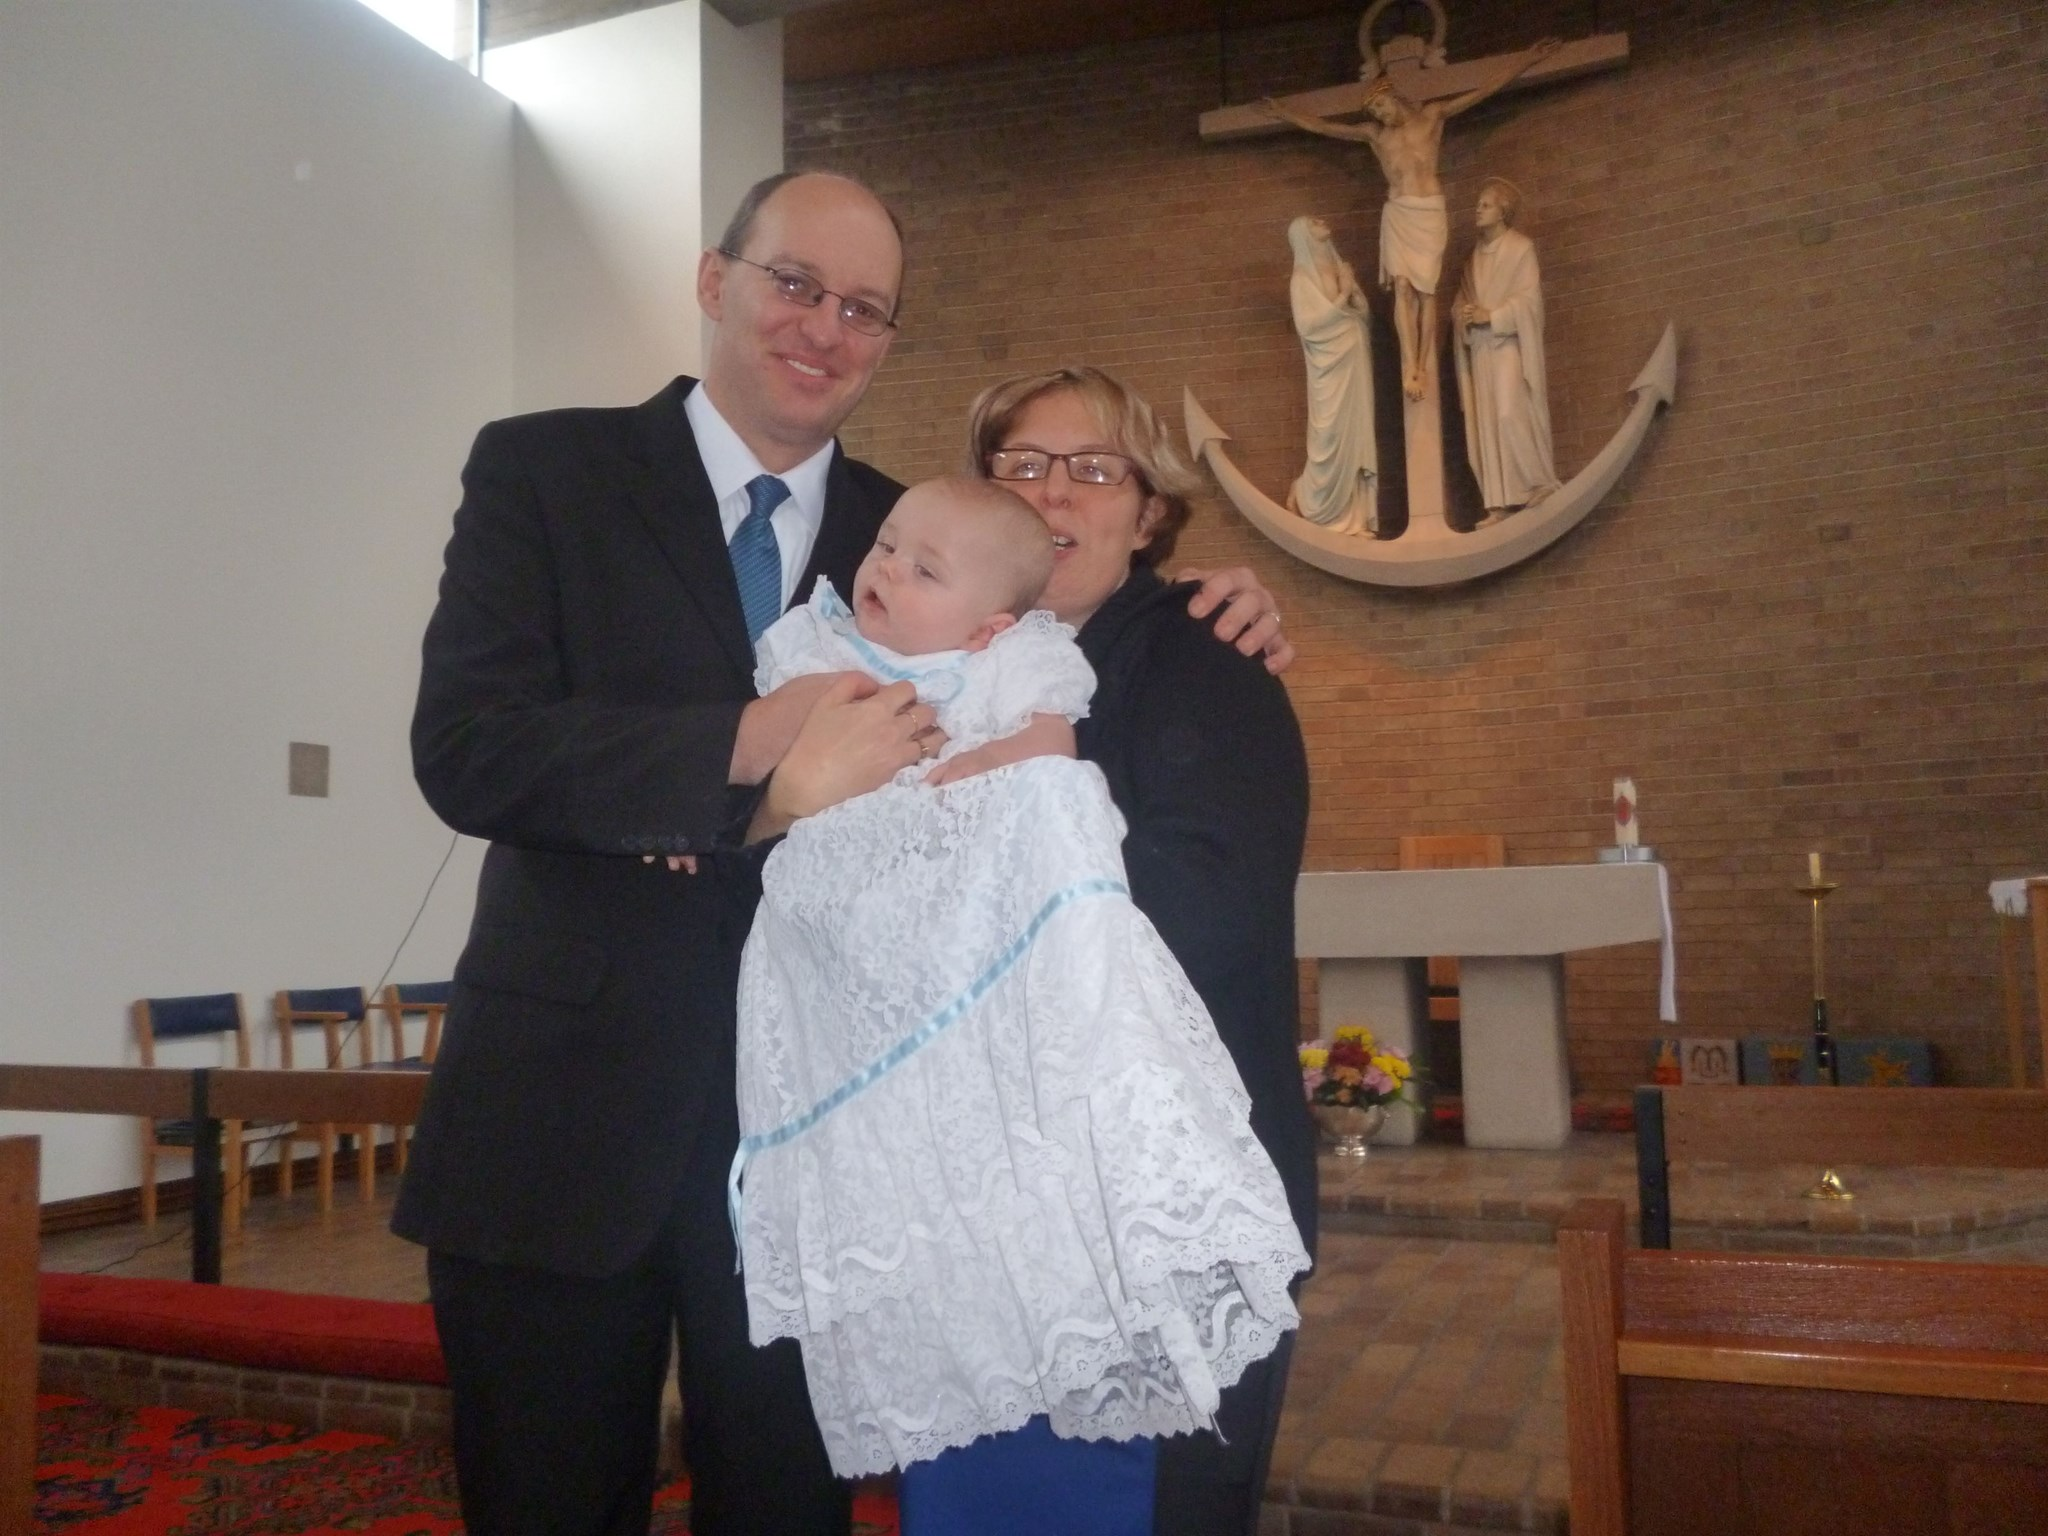 me jay and william at st andrews church b4 williams christening 25/11/12